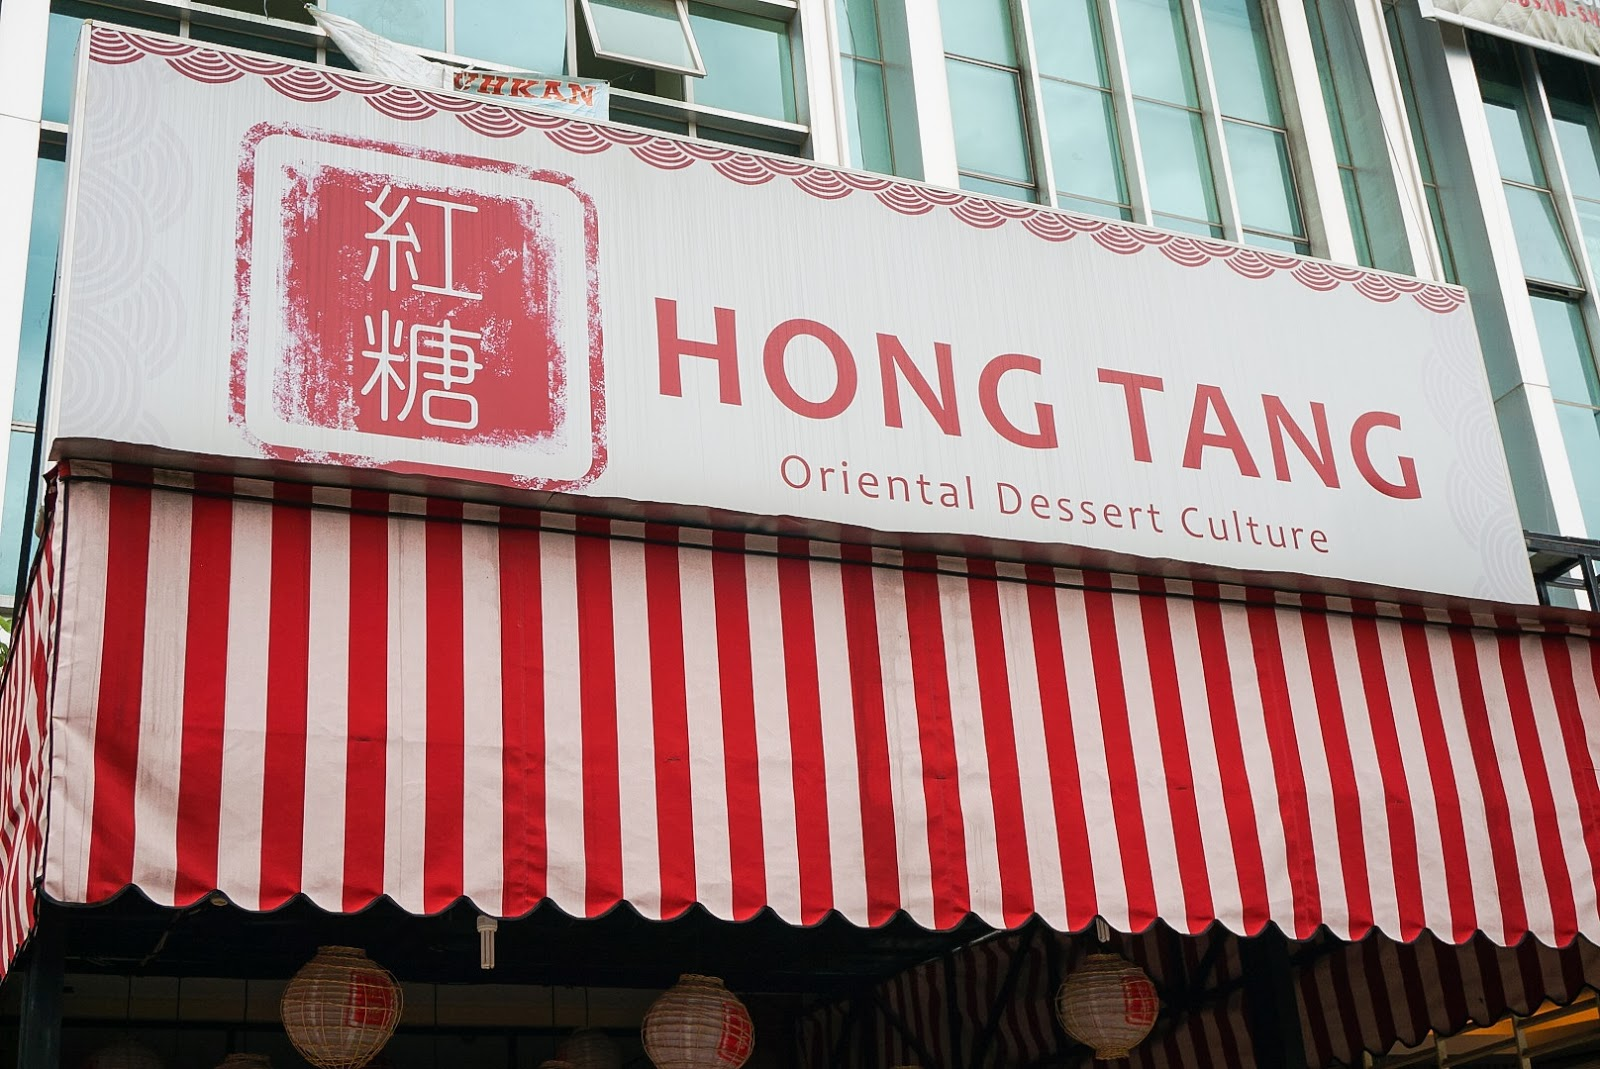 epicureanism: the story: hong tang